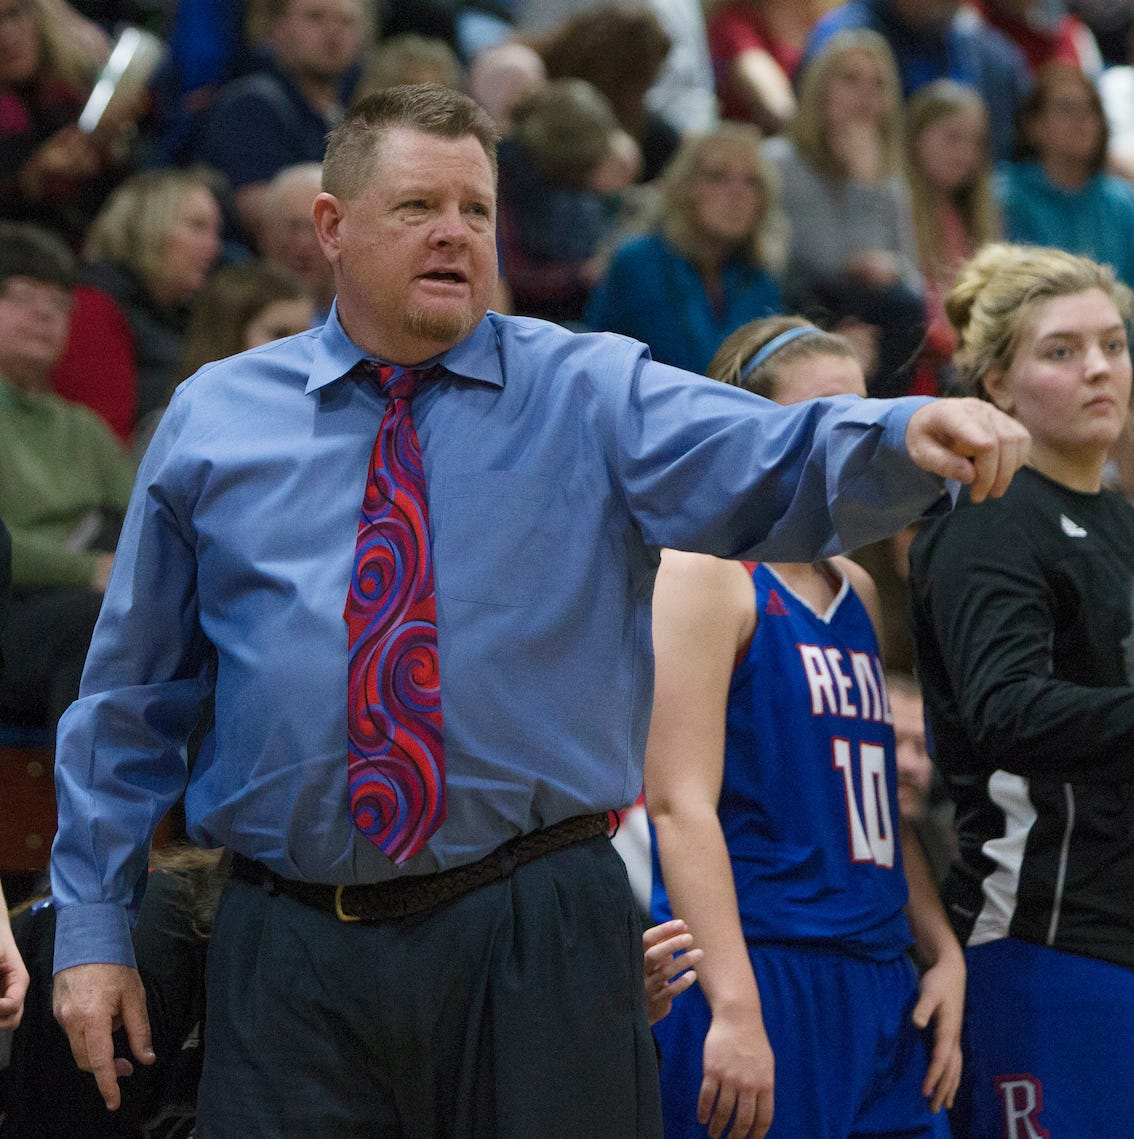 With two state titles in hand, Foster steps down as Reno coach